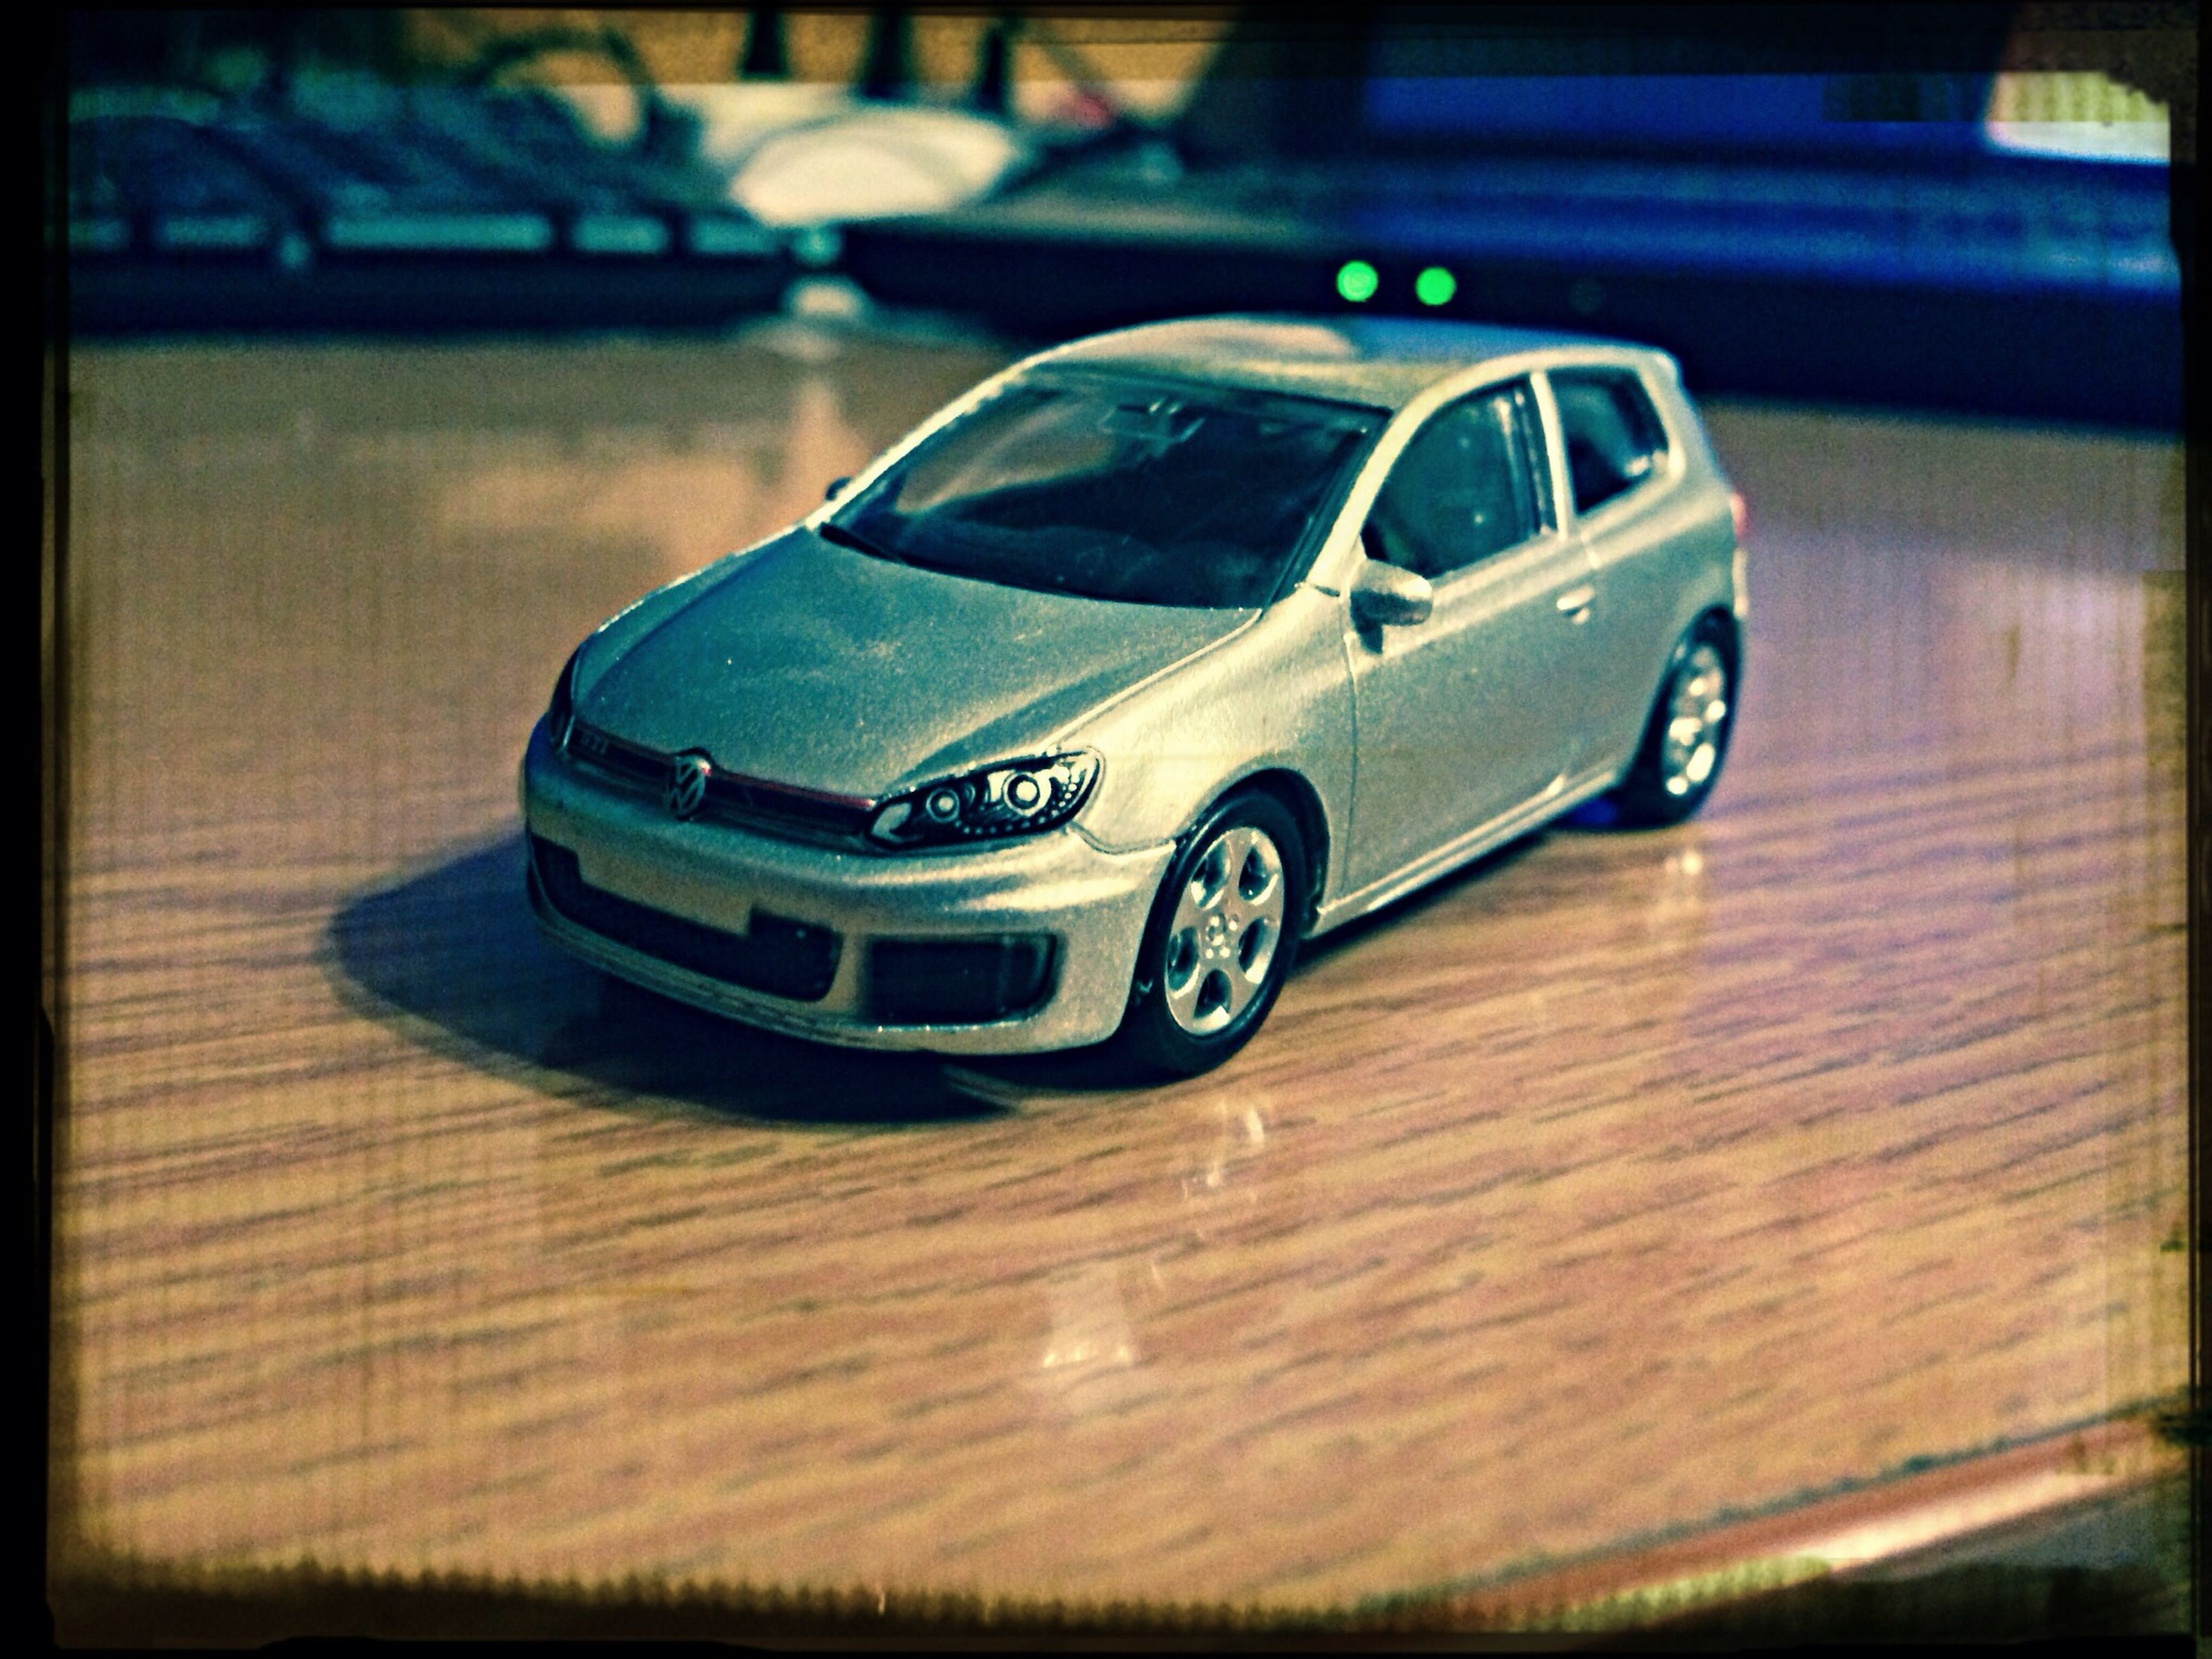 Cars Toys Little Car  VW Golf